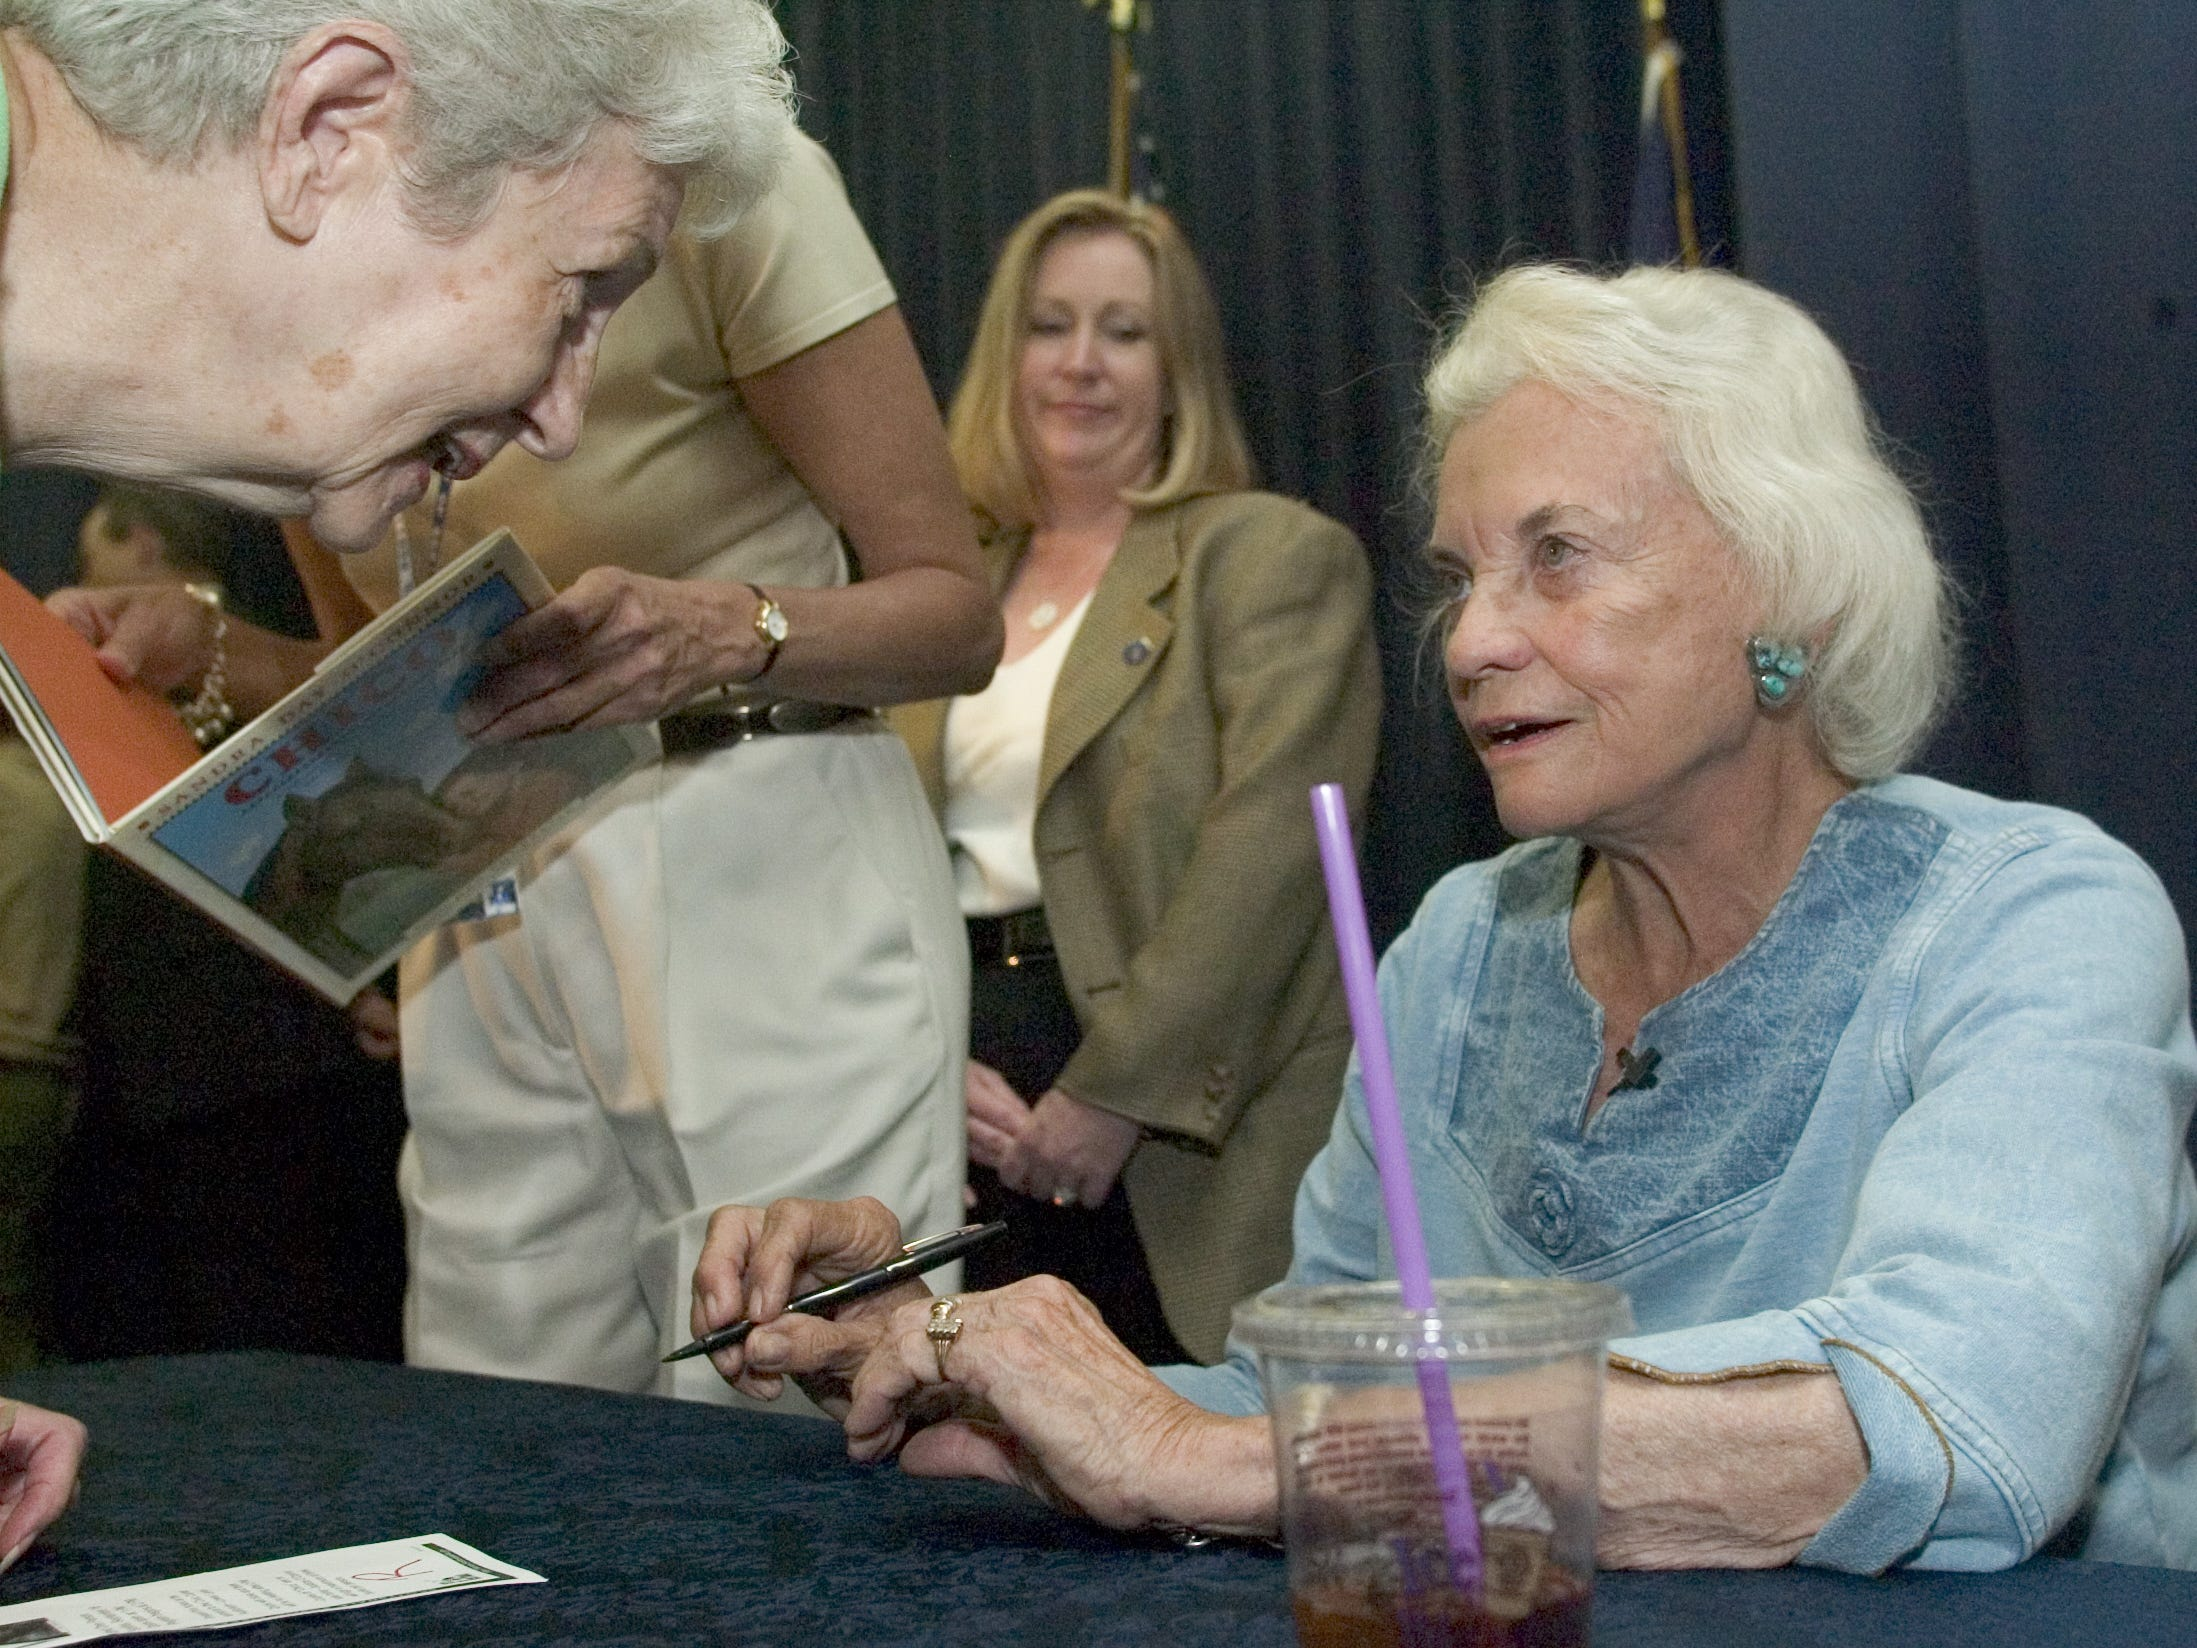 Virginia Rubiak of Scottsdale, (left) exchanges greetings with Justice Sandra Day O'Connor during a book signing at the Scottsdale Civic Center Library, on Sept. 18, 2005. Justice O'Connor visited the library to talk about her childhood growing up in Arizona and her book.